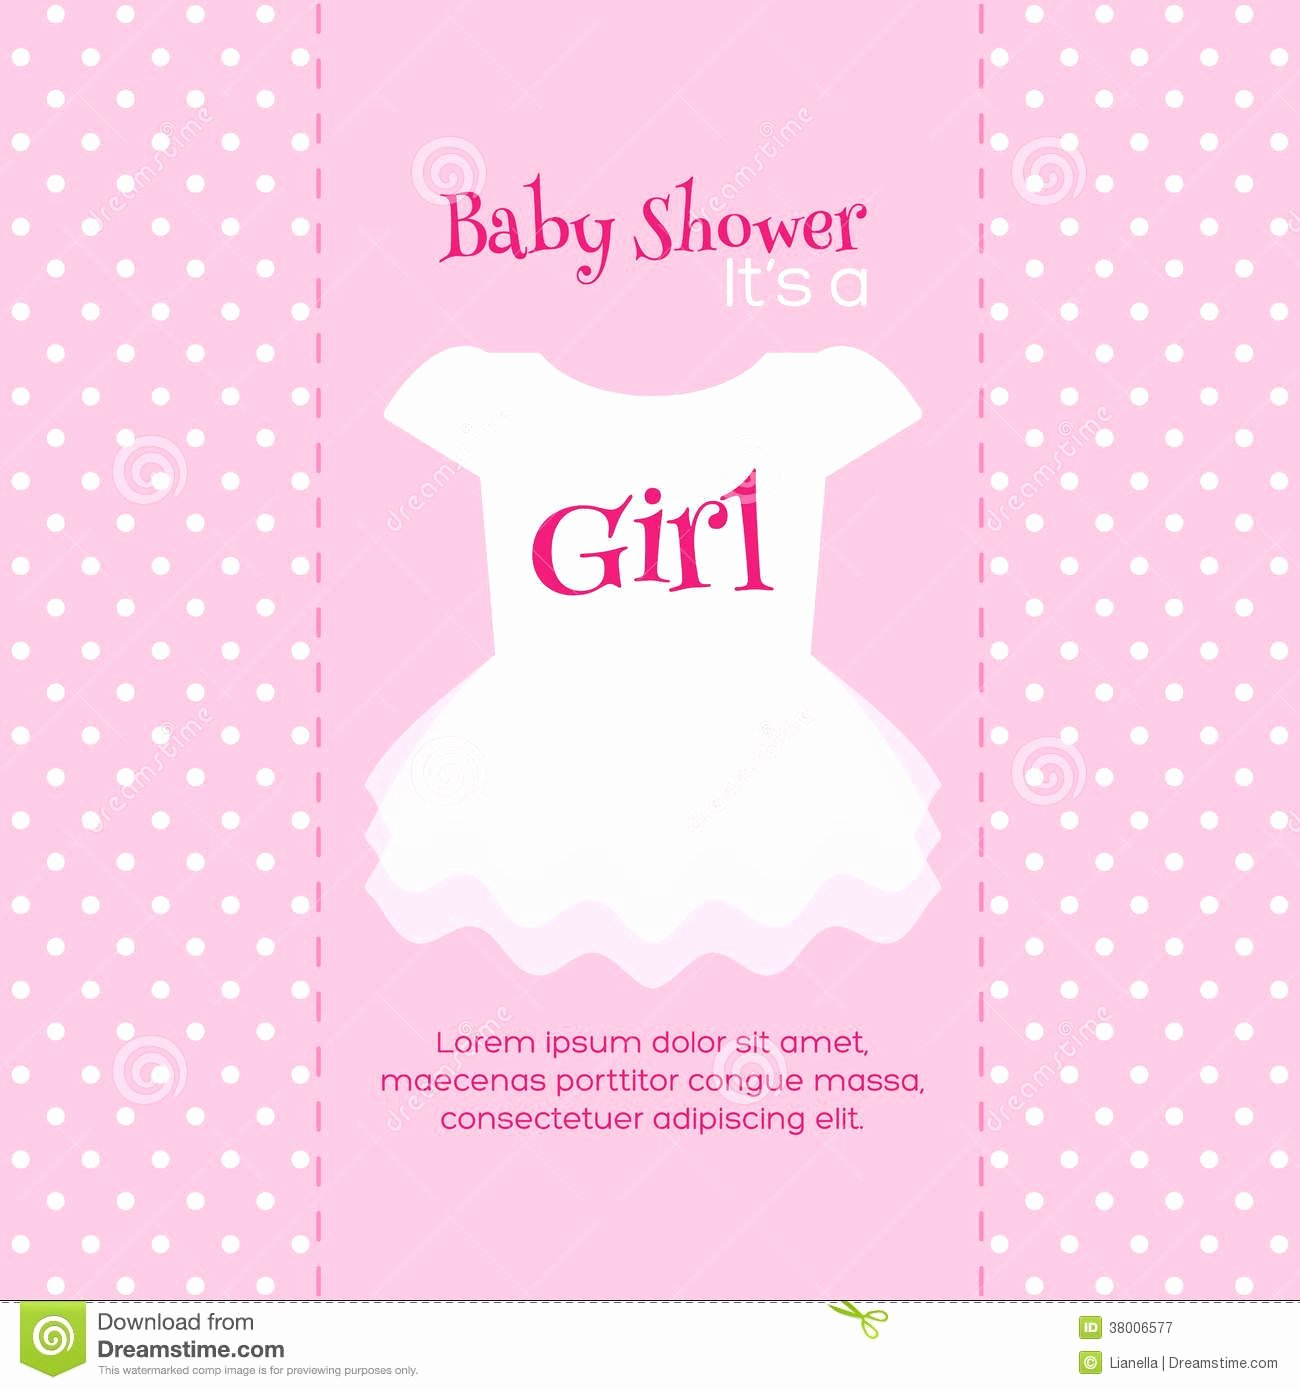 Design Free Printable Baby Shower Invitations for Girls